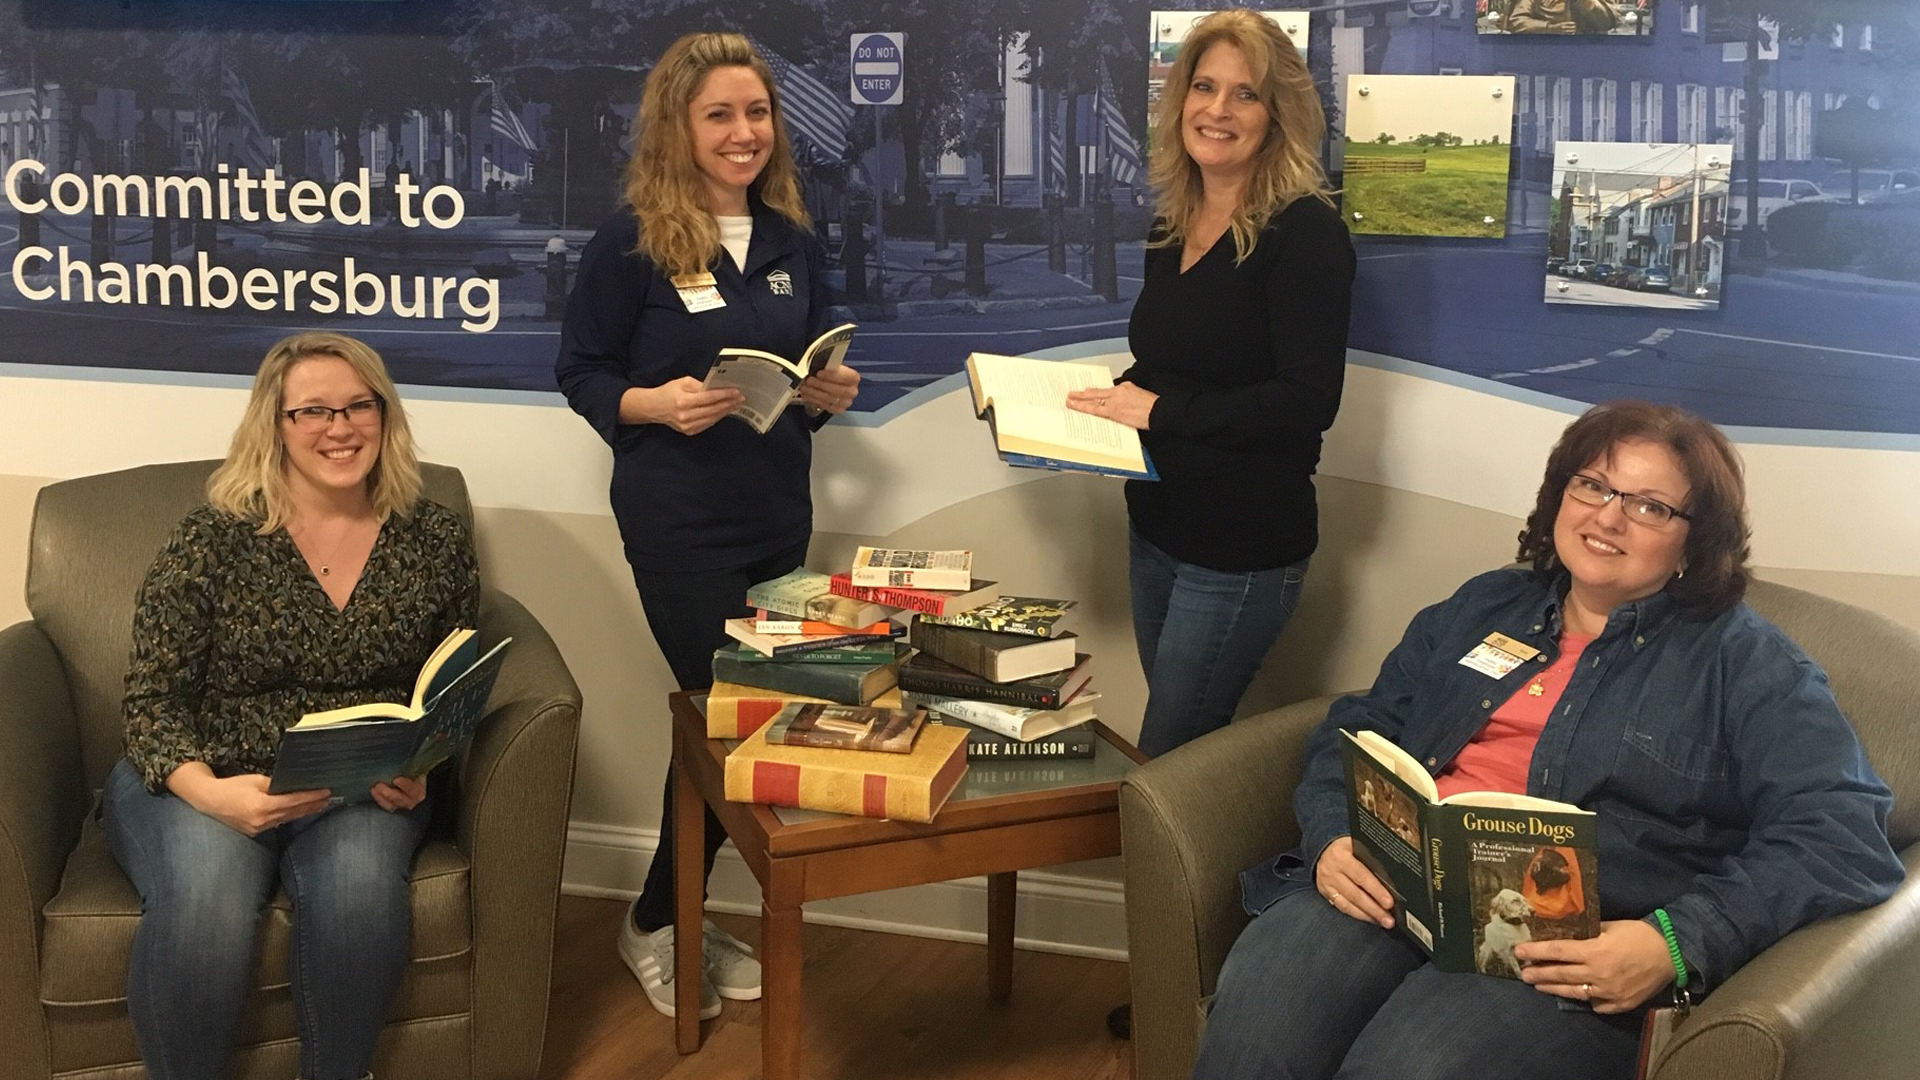 Book Drive Photo - Norland Office